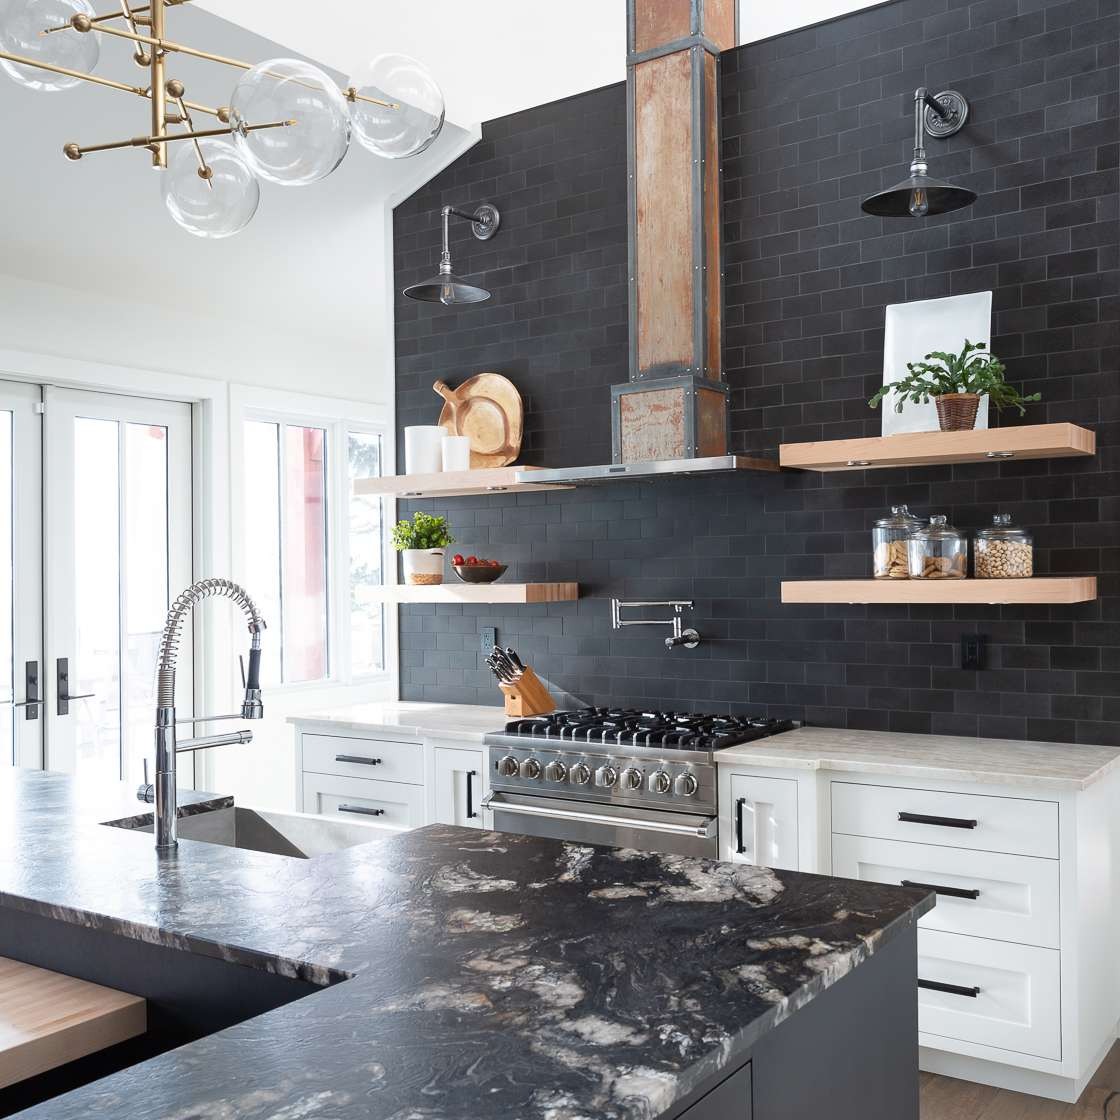 A kitchen lined with black tiles, black cabinets, and black marble countertops